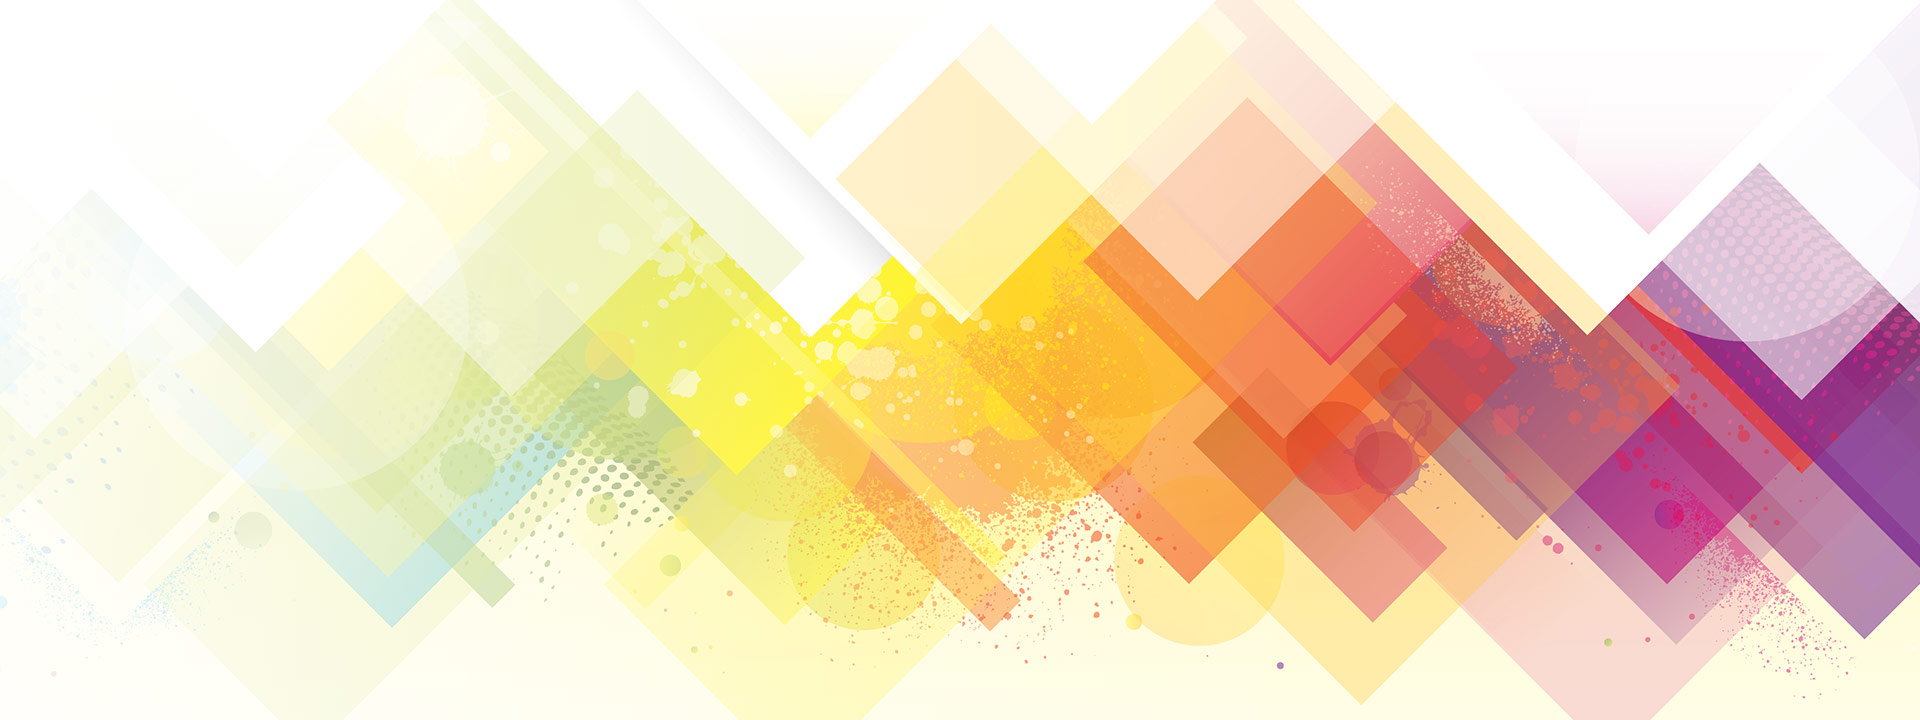 Abstract colorful blocks on white background